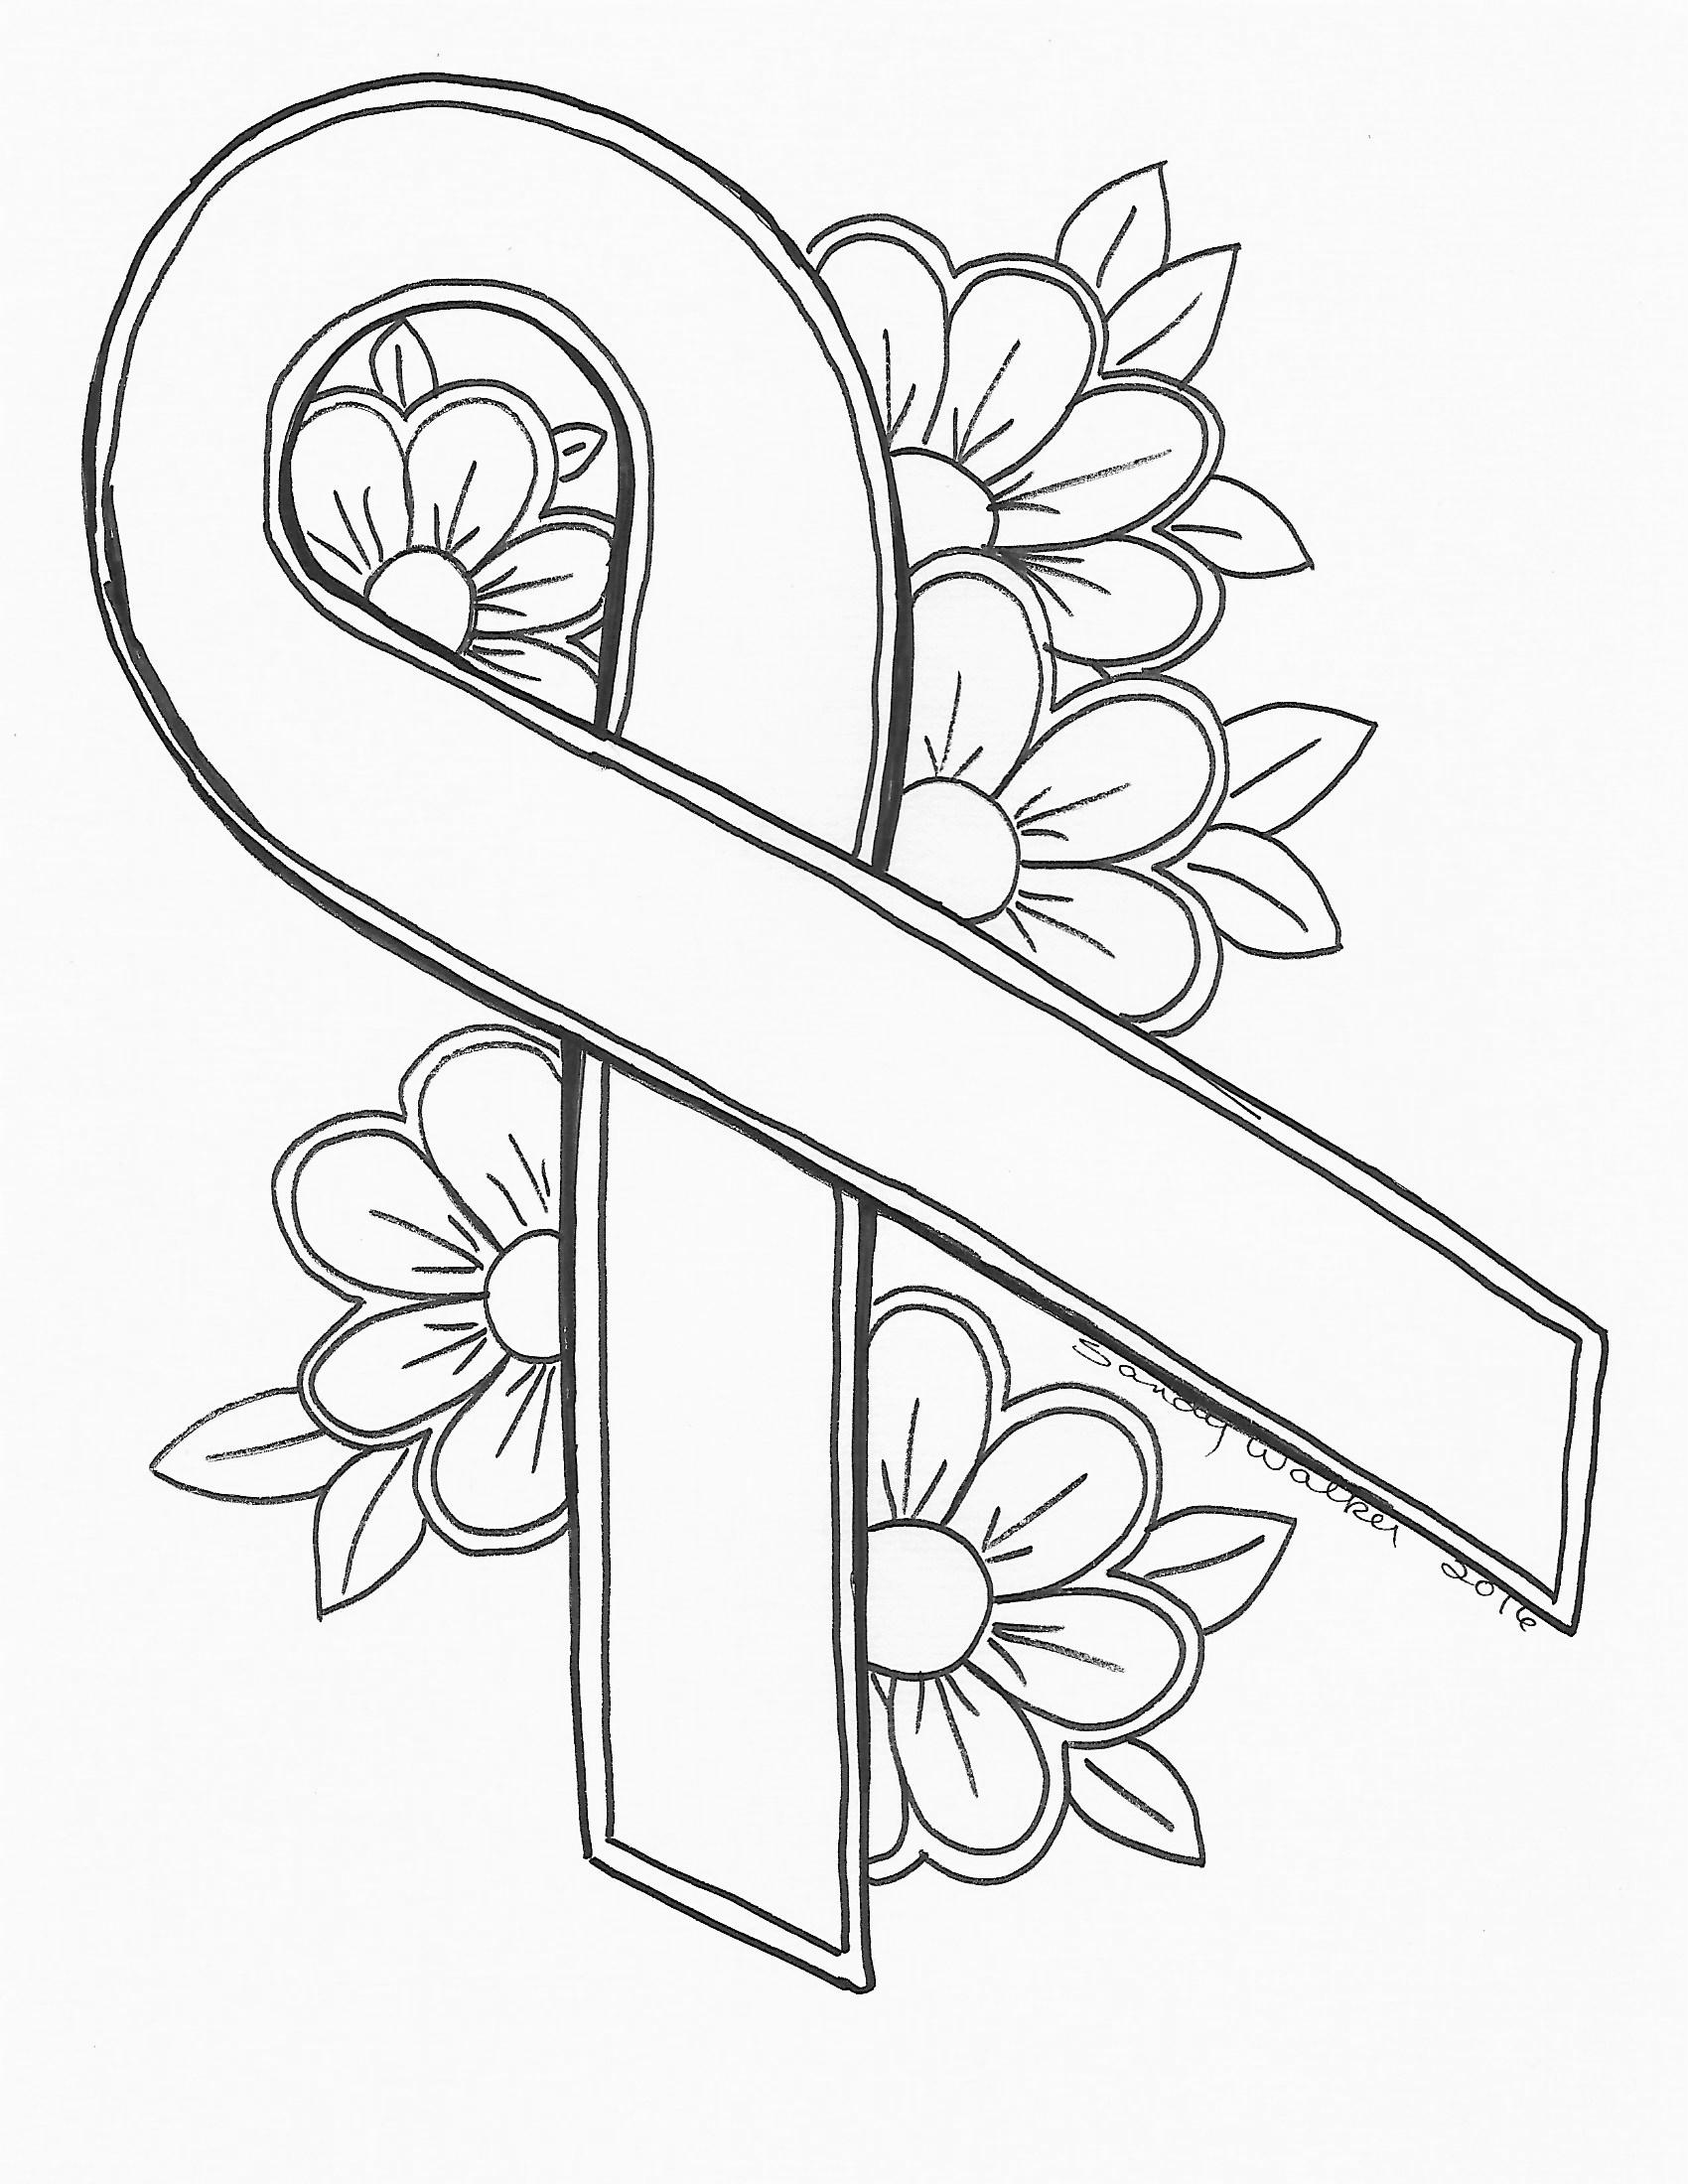 coloring sheet breast cancer awareness coloring pages breast paintings search result at paintingvalleycom coloring awareness cancer pages coloring sheet breast